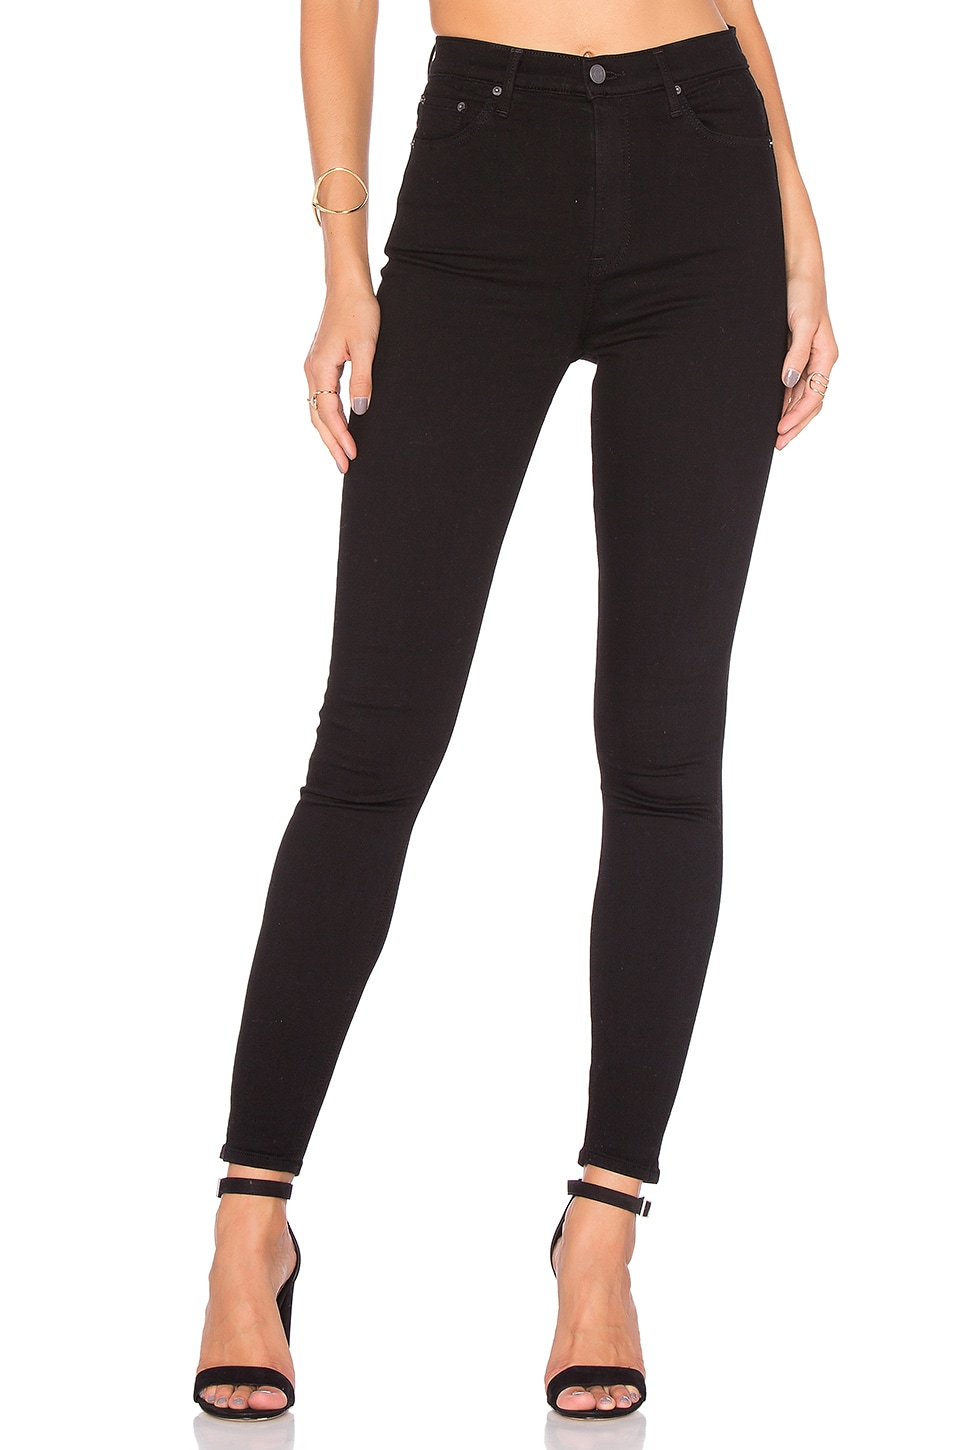 GRLFRND PETITE Kendall Super Stretch High-Rise Skinny Jean in Black Magic Woman